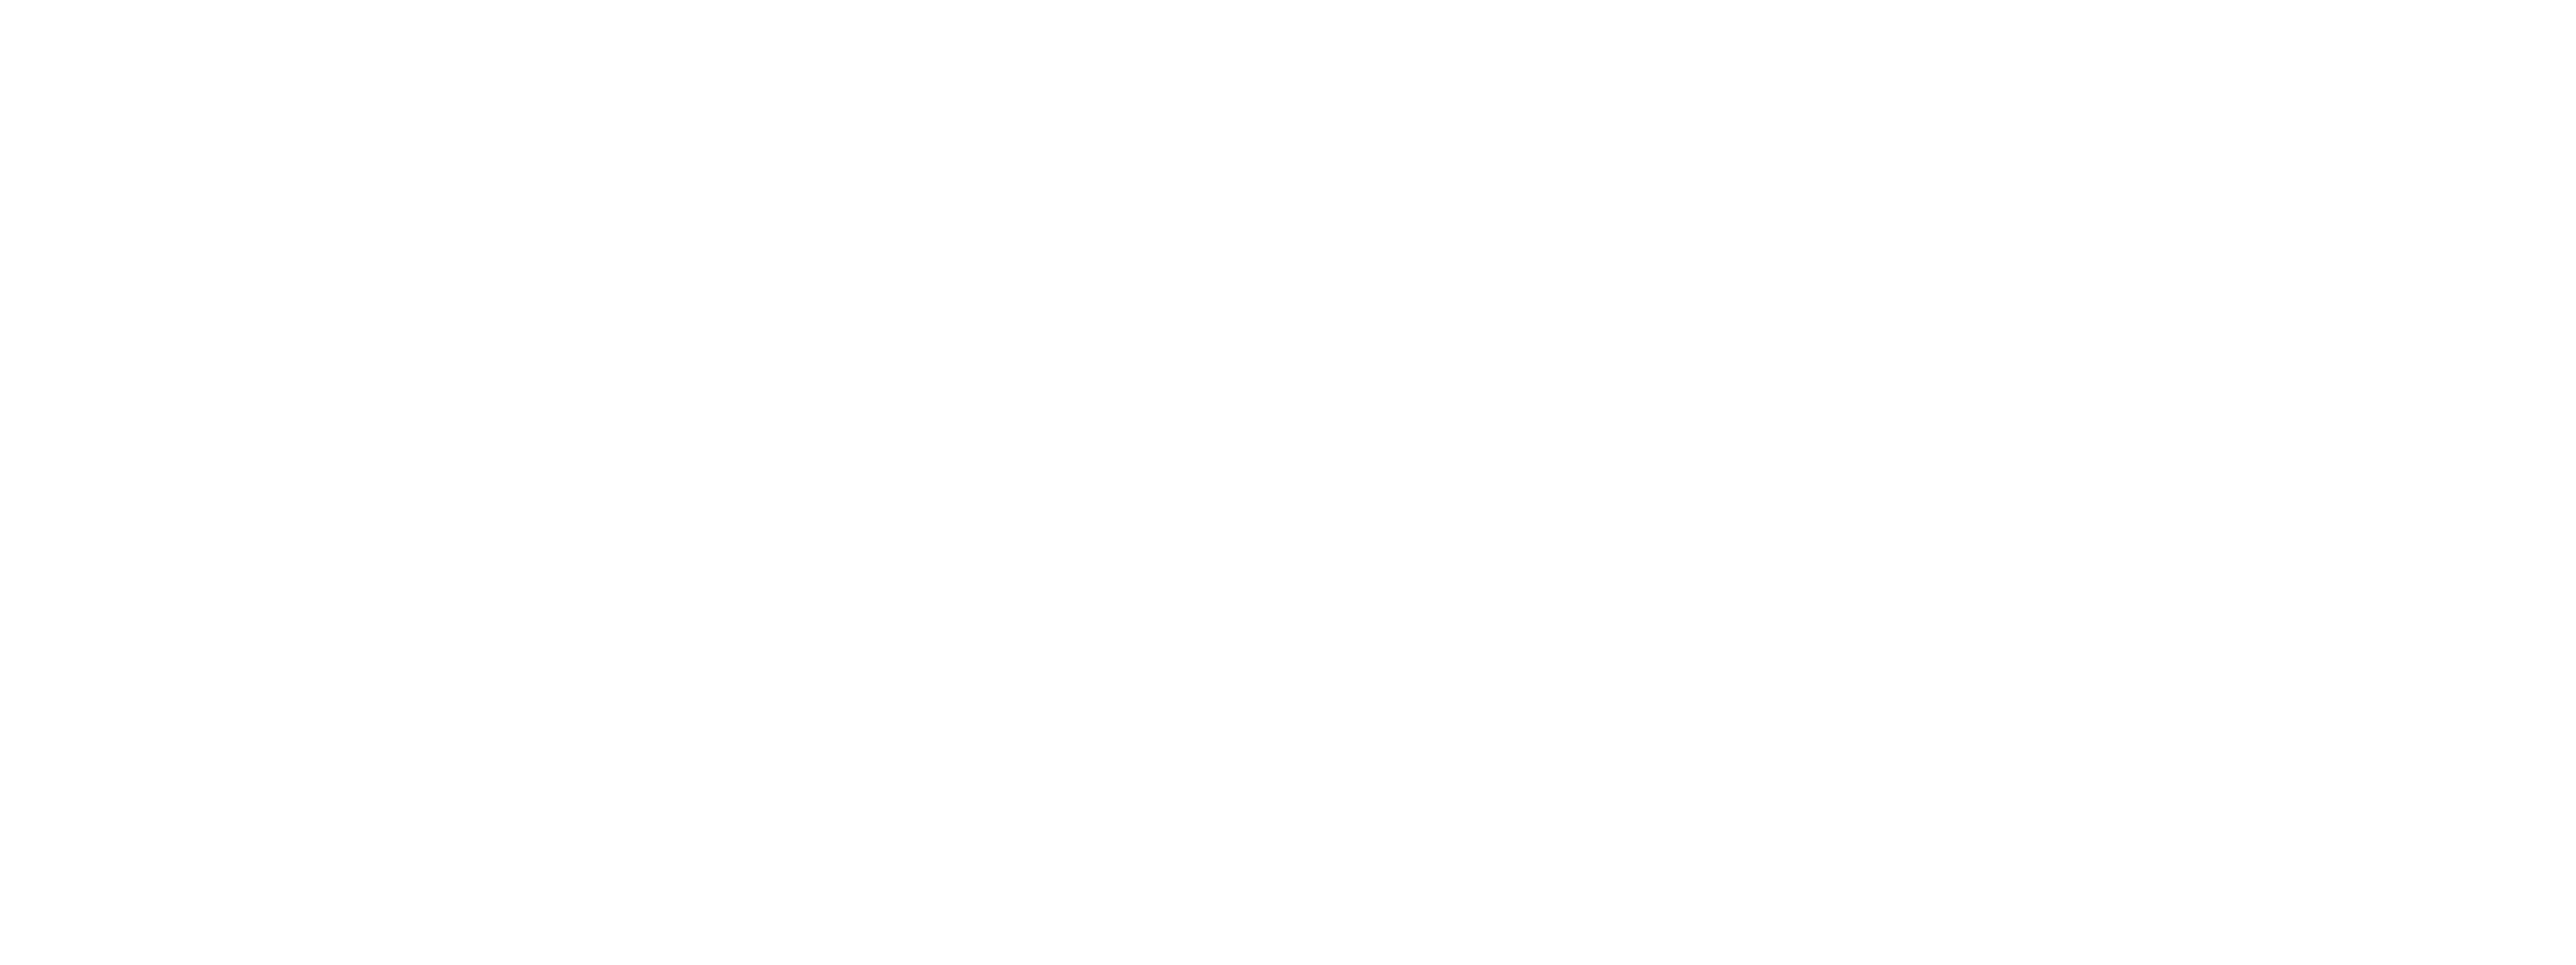 DM Communications logo